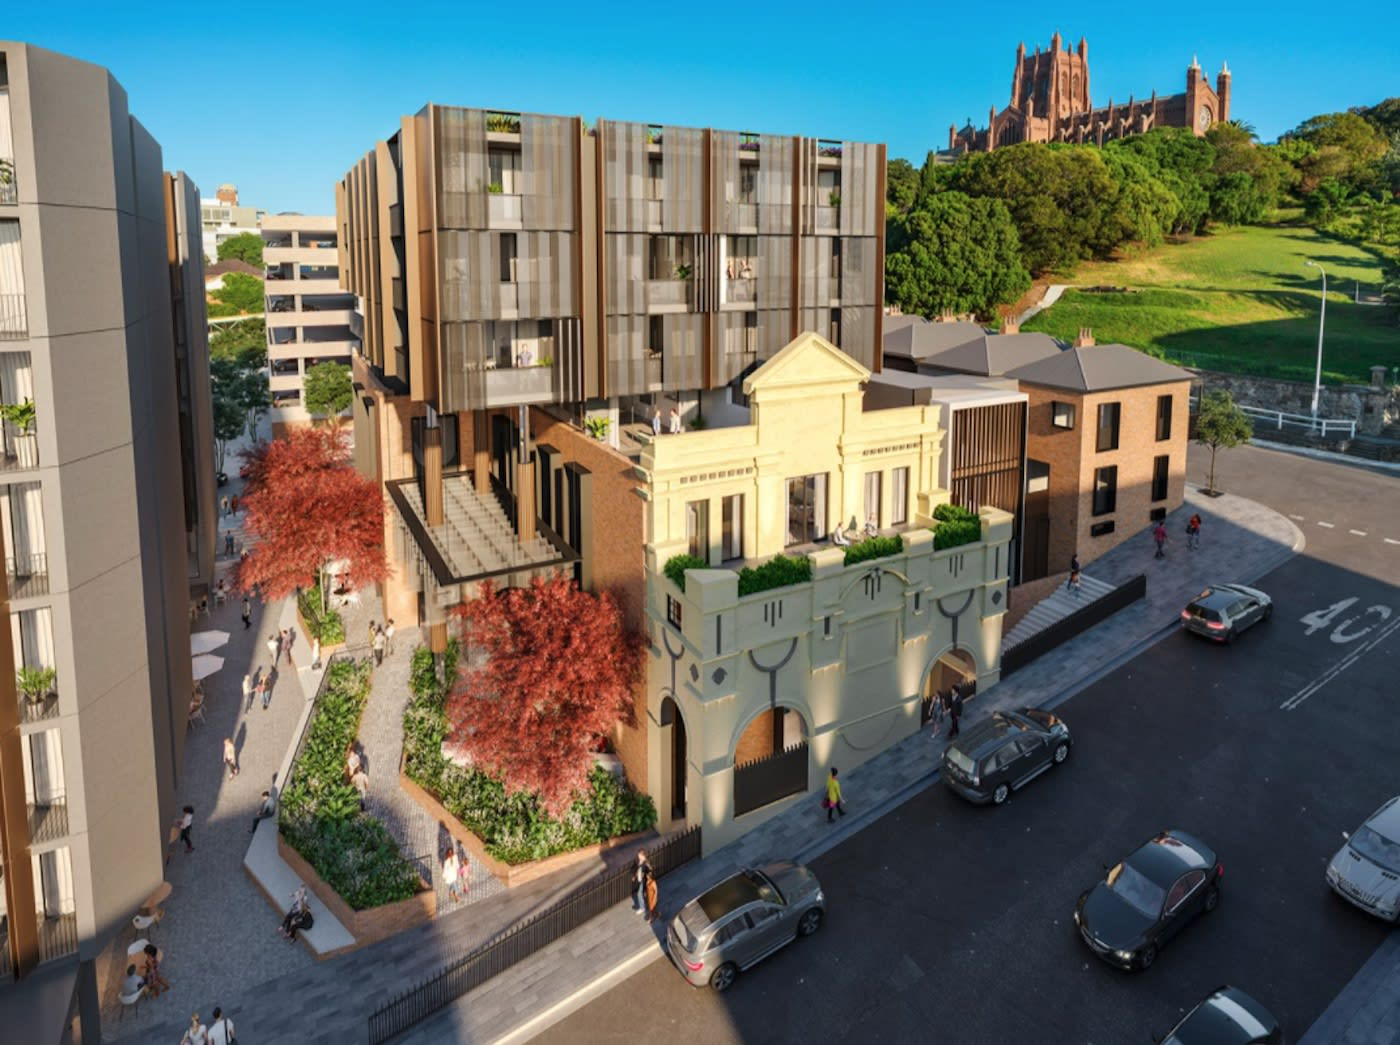 East End Newcastle approach first stage sell out with stage two construction soon to commence